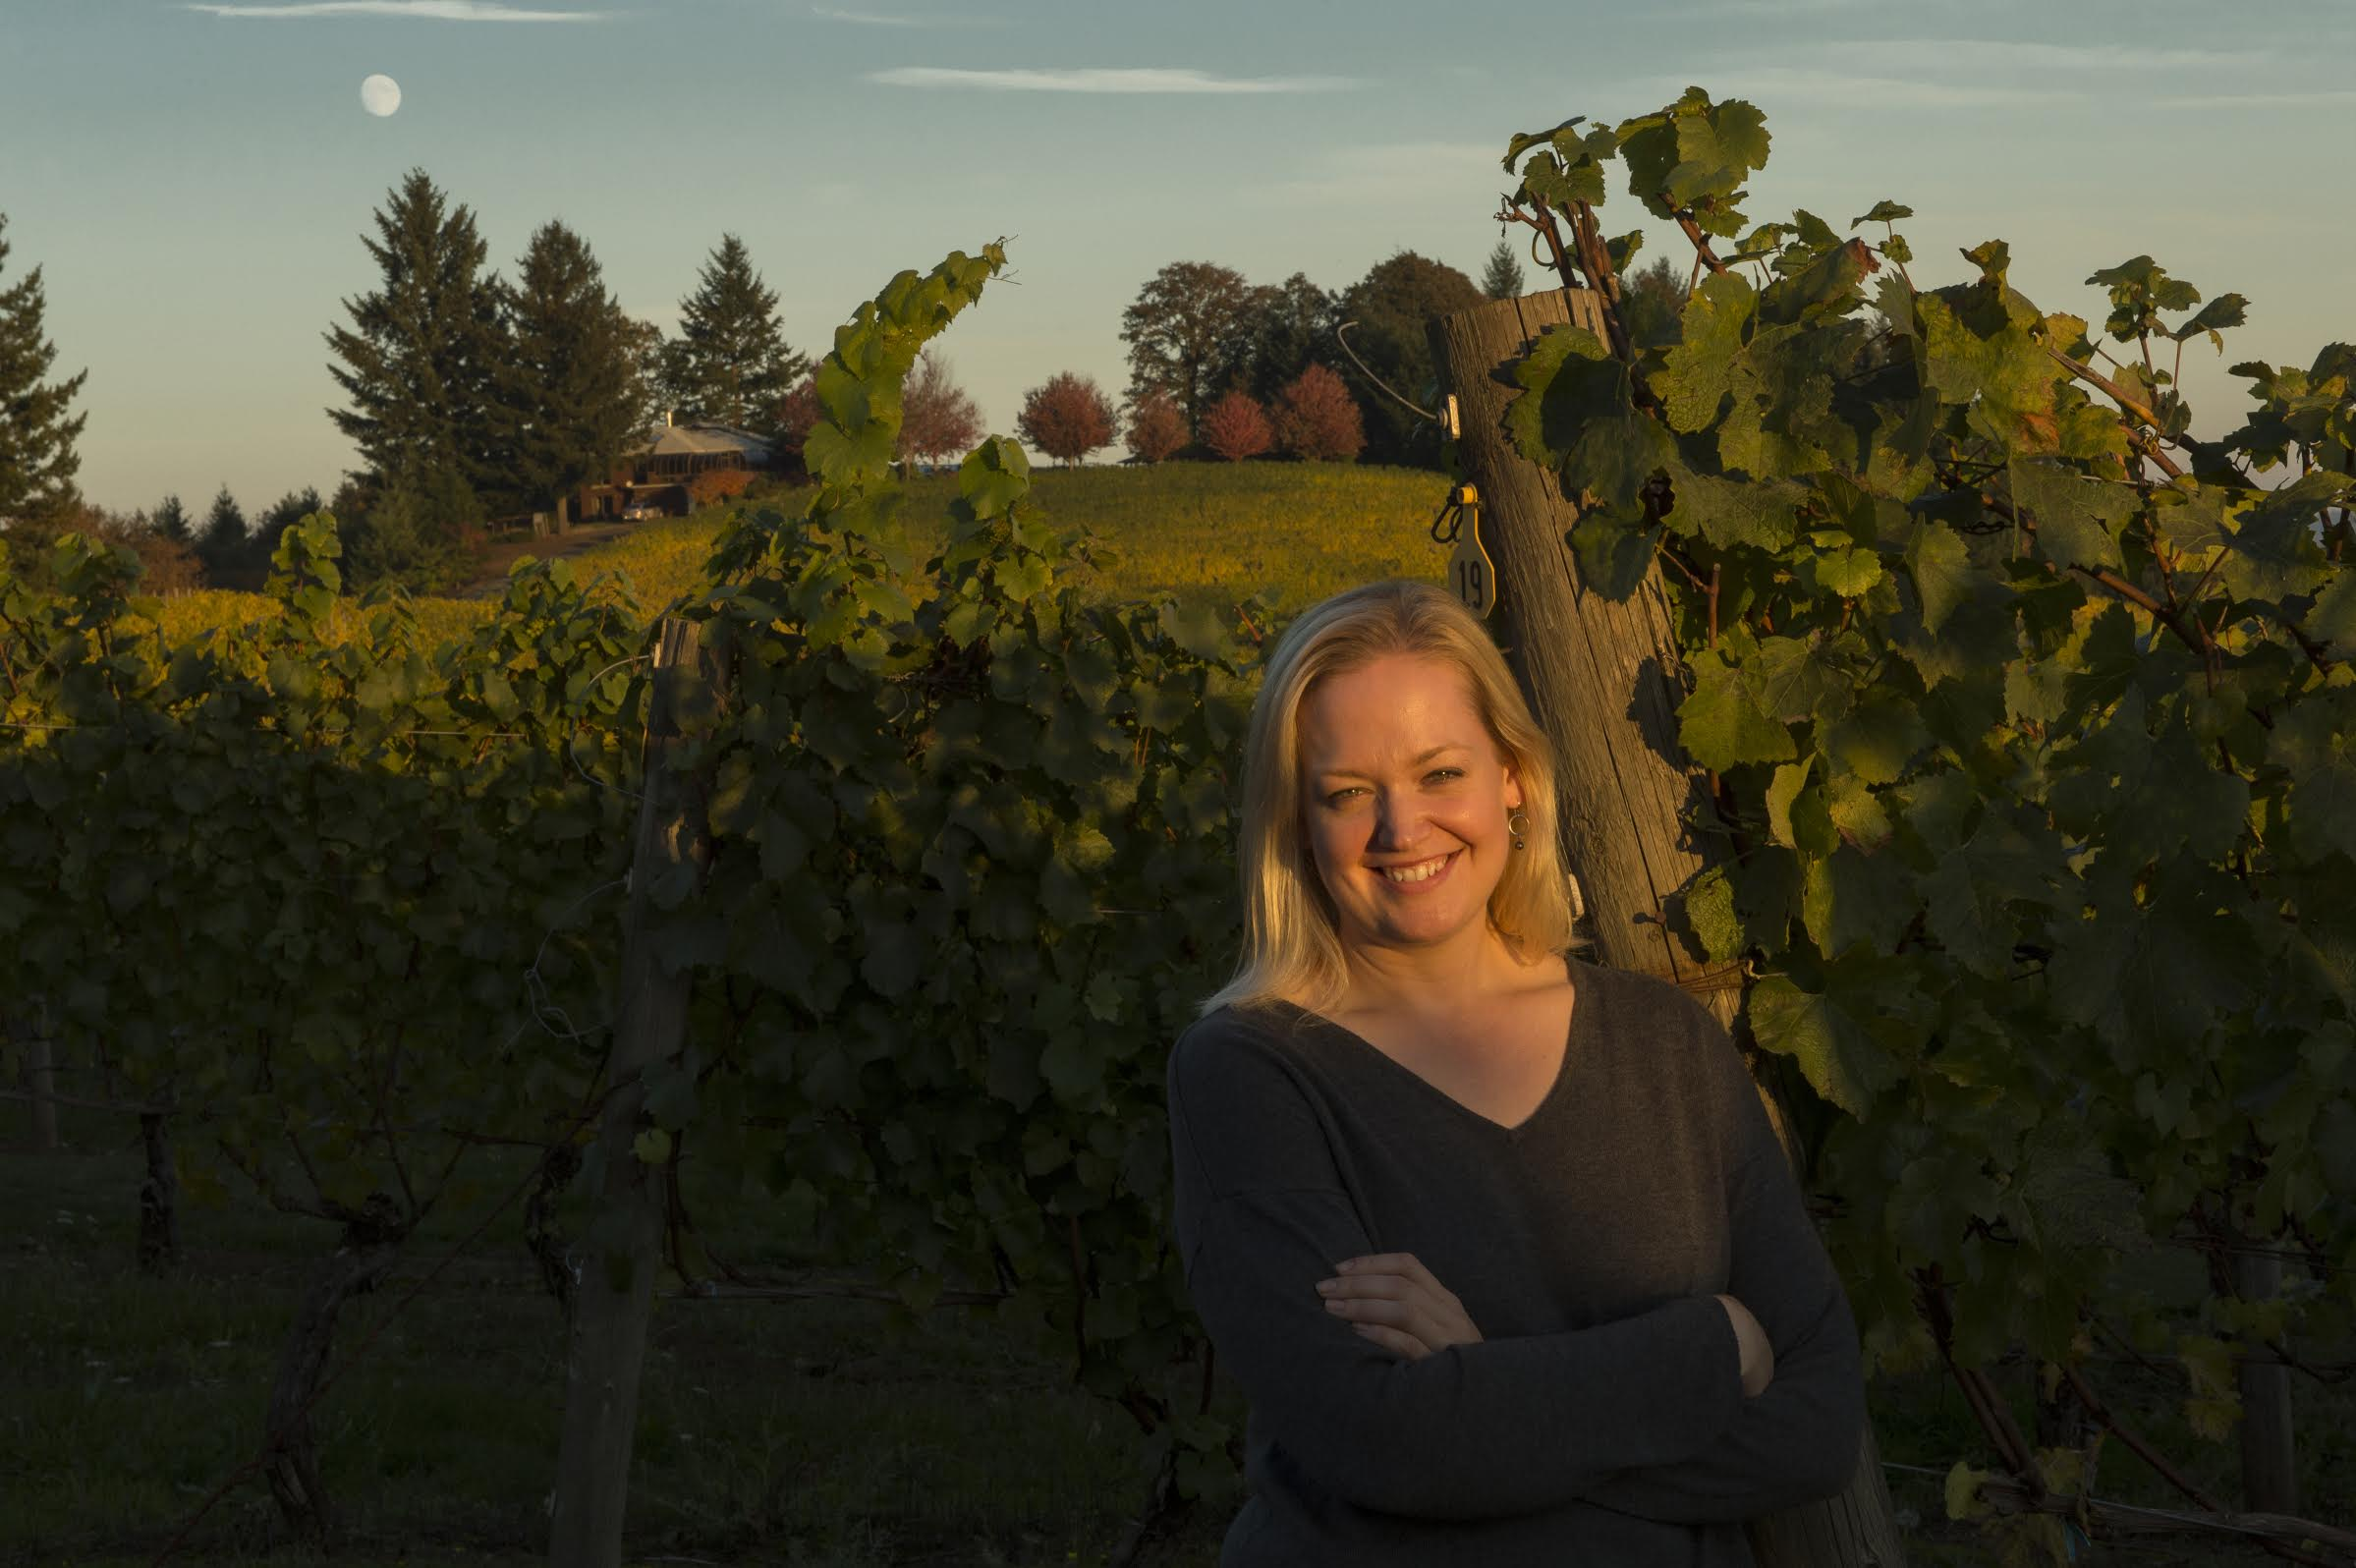 Kim Kramer is the talented winemaker at Kramer Vineyards.